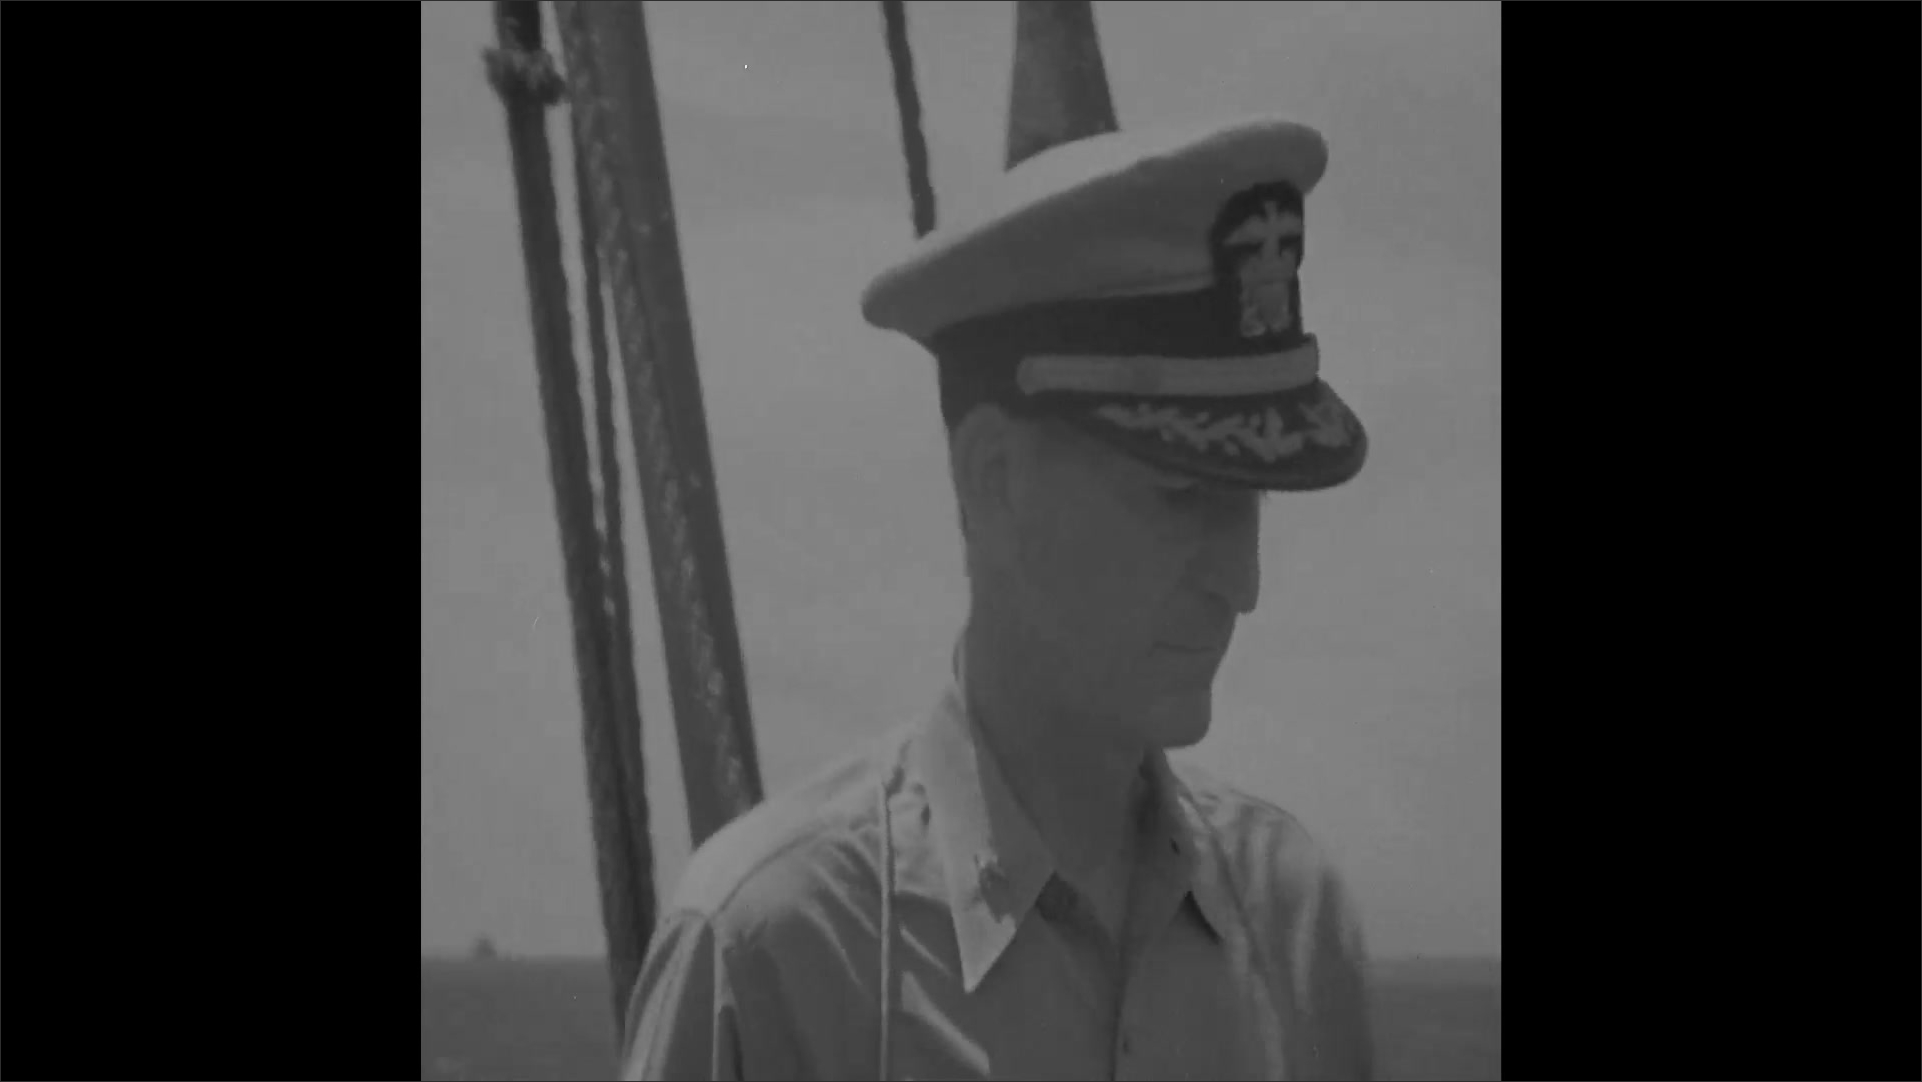 1940s: Officer stands on deck looking at ship, salutes then walks down steps to debark ship.